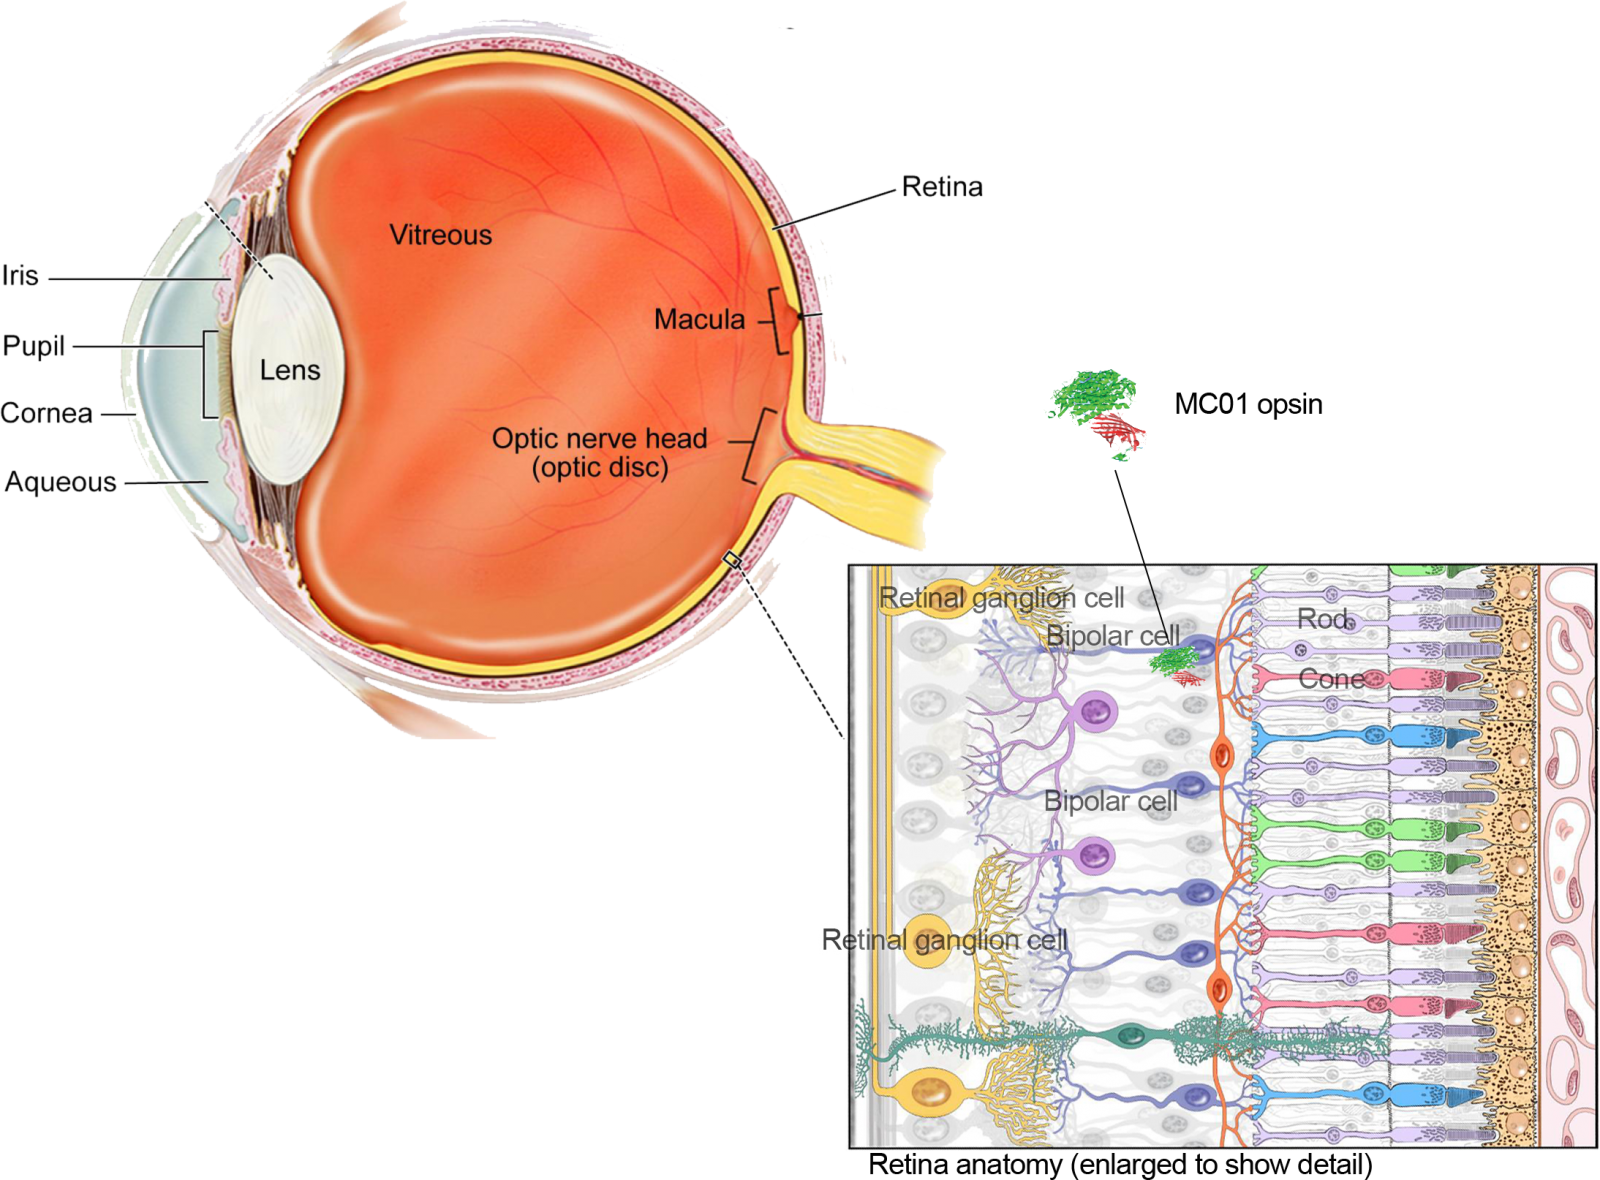 Diagram of retina showing neuronal layers and location of MCO1 opsin on bipolar cell.